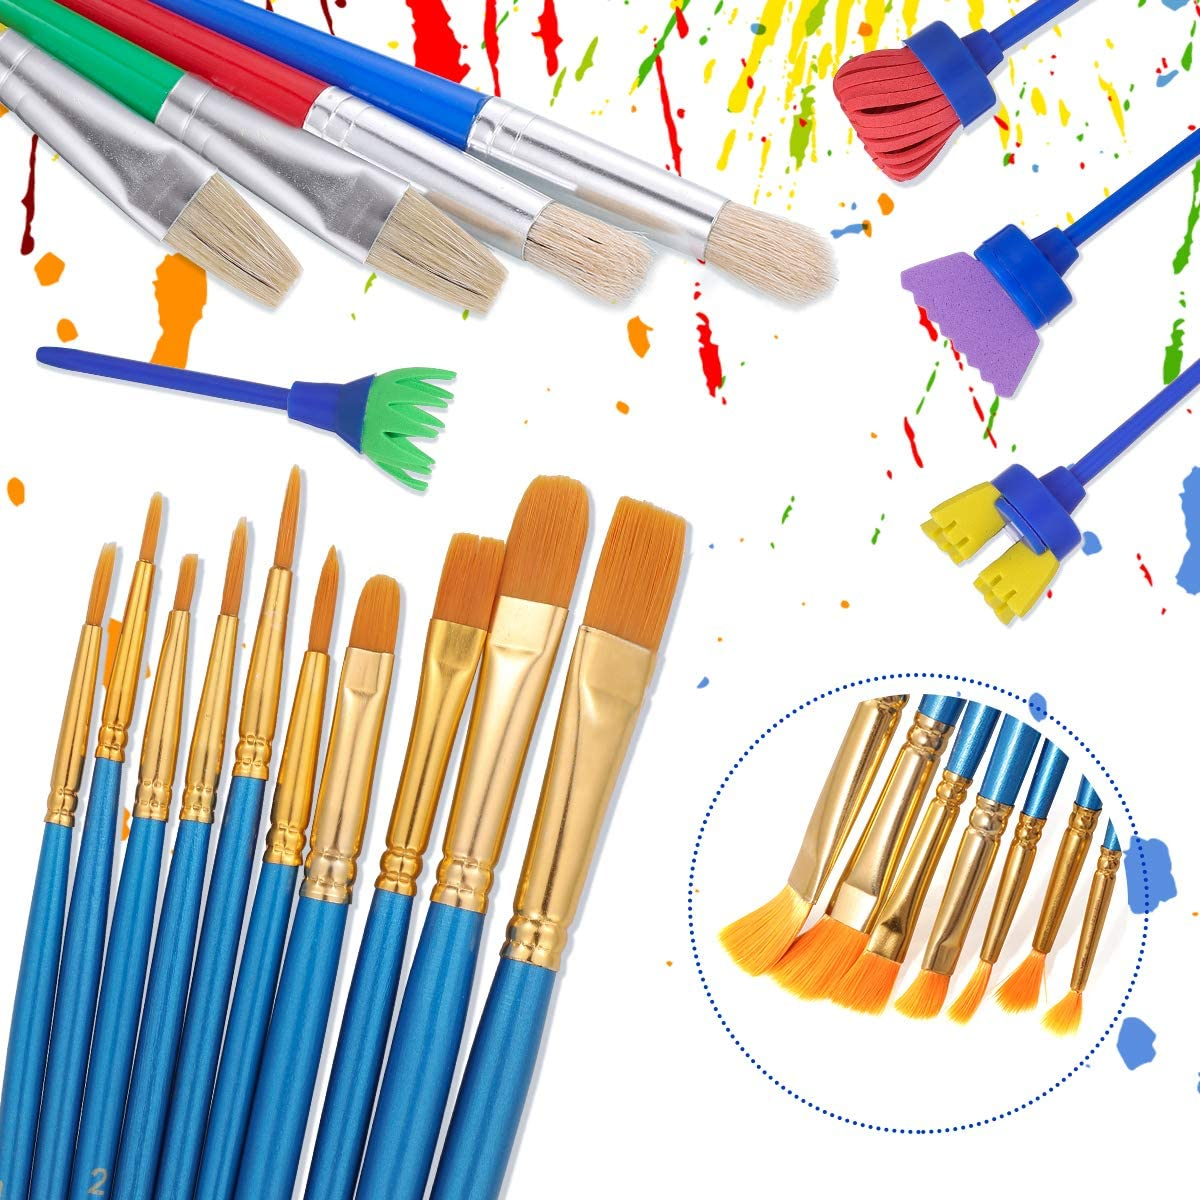 STOBOK 37pcs Kids Painting Tool Kit,Paint Supplies Include Paint Cleaning Cups,Tray,Palette,Multi Sizes Paint Pen,Brushes Set for Child//Toddler Art Class Painting,School